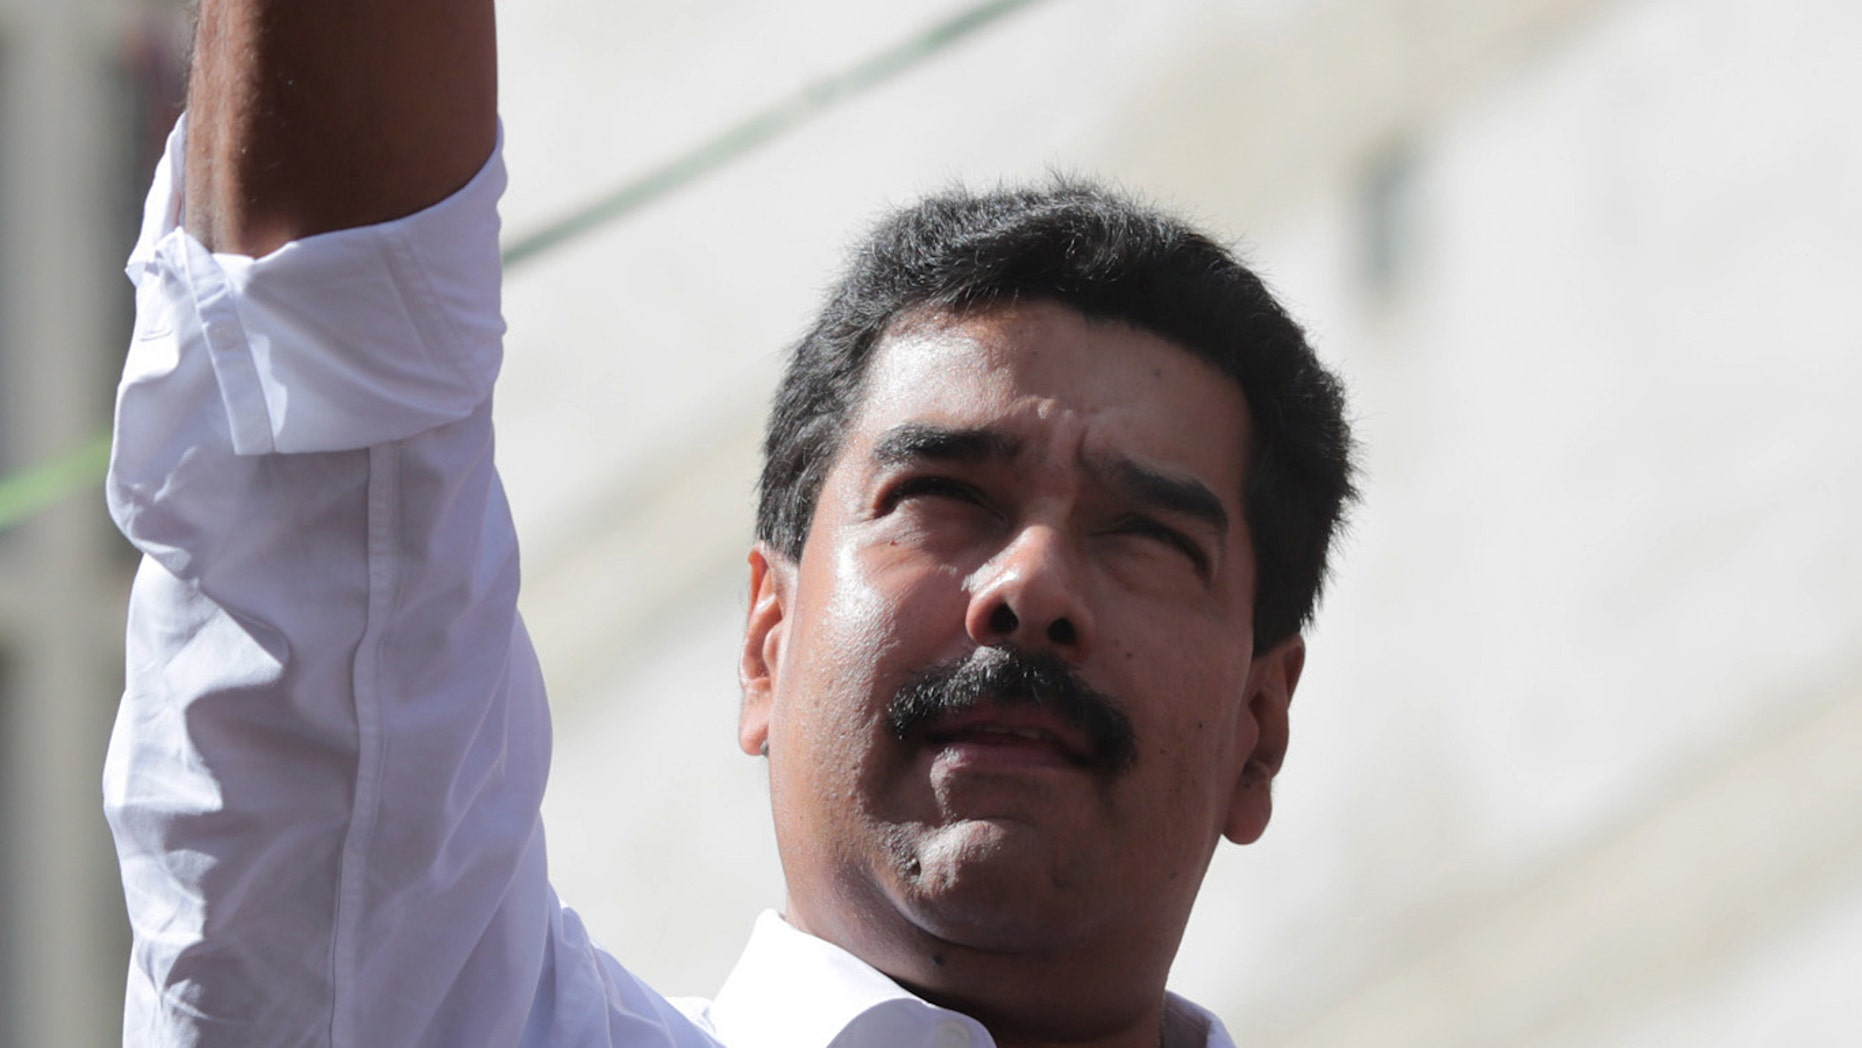 In this photo provided by Miraflores Presidential Press Office, Venezuela's President Nicolas Maduro holds up fist in solidarity at a transport workers rally in Caracas, Venezuela, Tuesday, Nov. 12, 2013. Maduro says he'll present evidence in the coming hours showing how the U.S. Embassy in Caracas is plotting to destabilize the South American nation. Maduro's announcement at a pro-government rally Tuesday comes after he vowed to extend price caps that have led to long lines of bargain hunters at appliance stores across the country in recent days. (AP Photo/Miraflores Presidential Office)